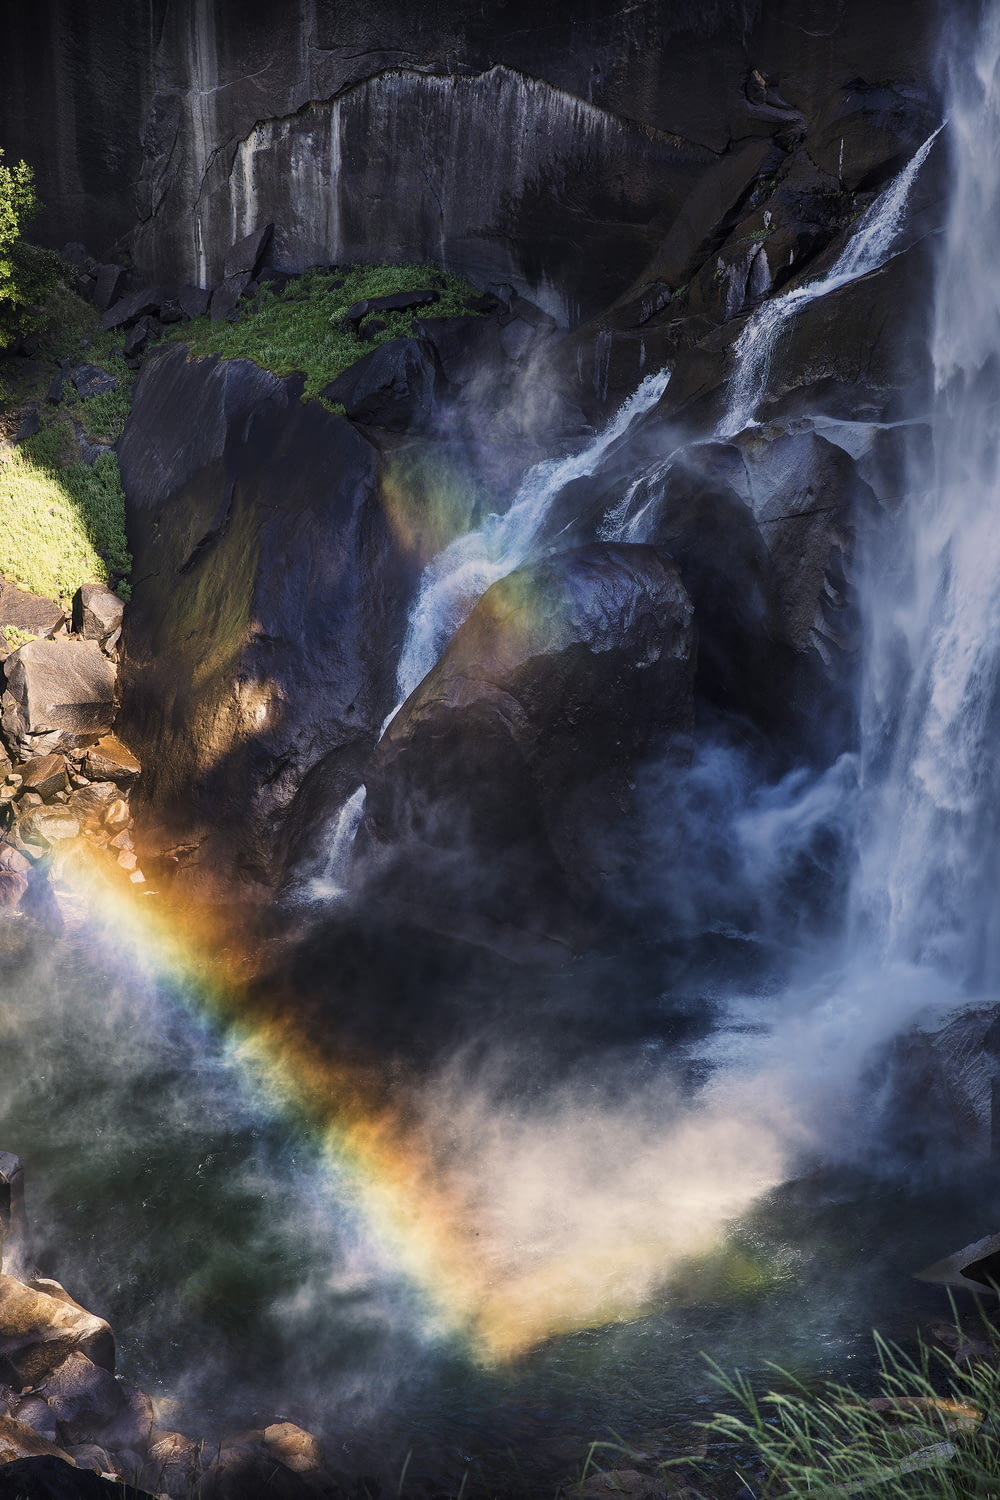 long-exposure photography of waterfalls during daytime